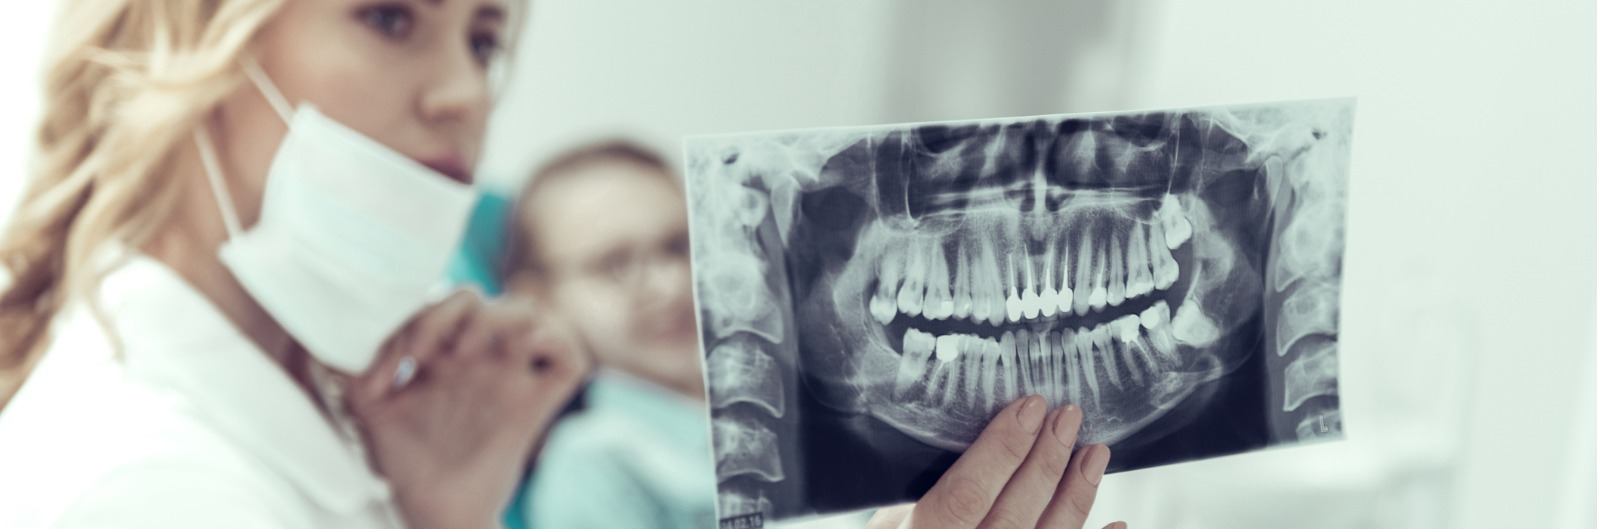 results-of-an-xray-in-the-hands-of-a-young-dentist-picture-1600x529.jpg